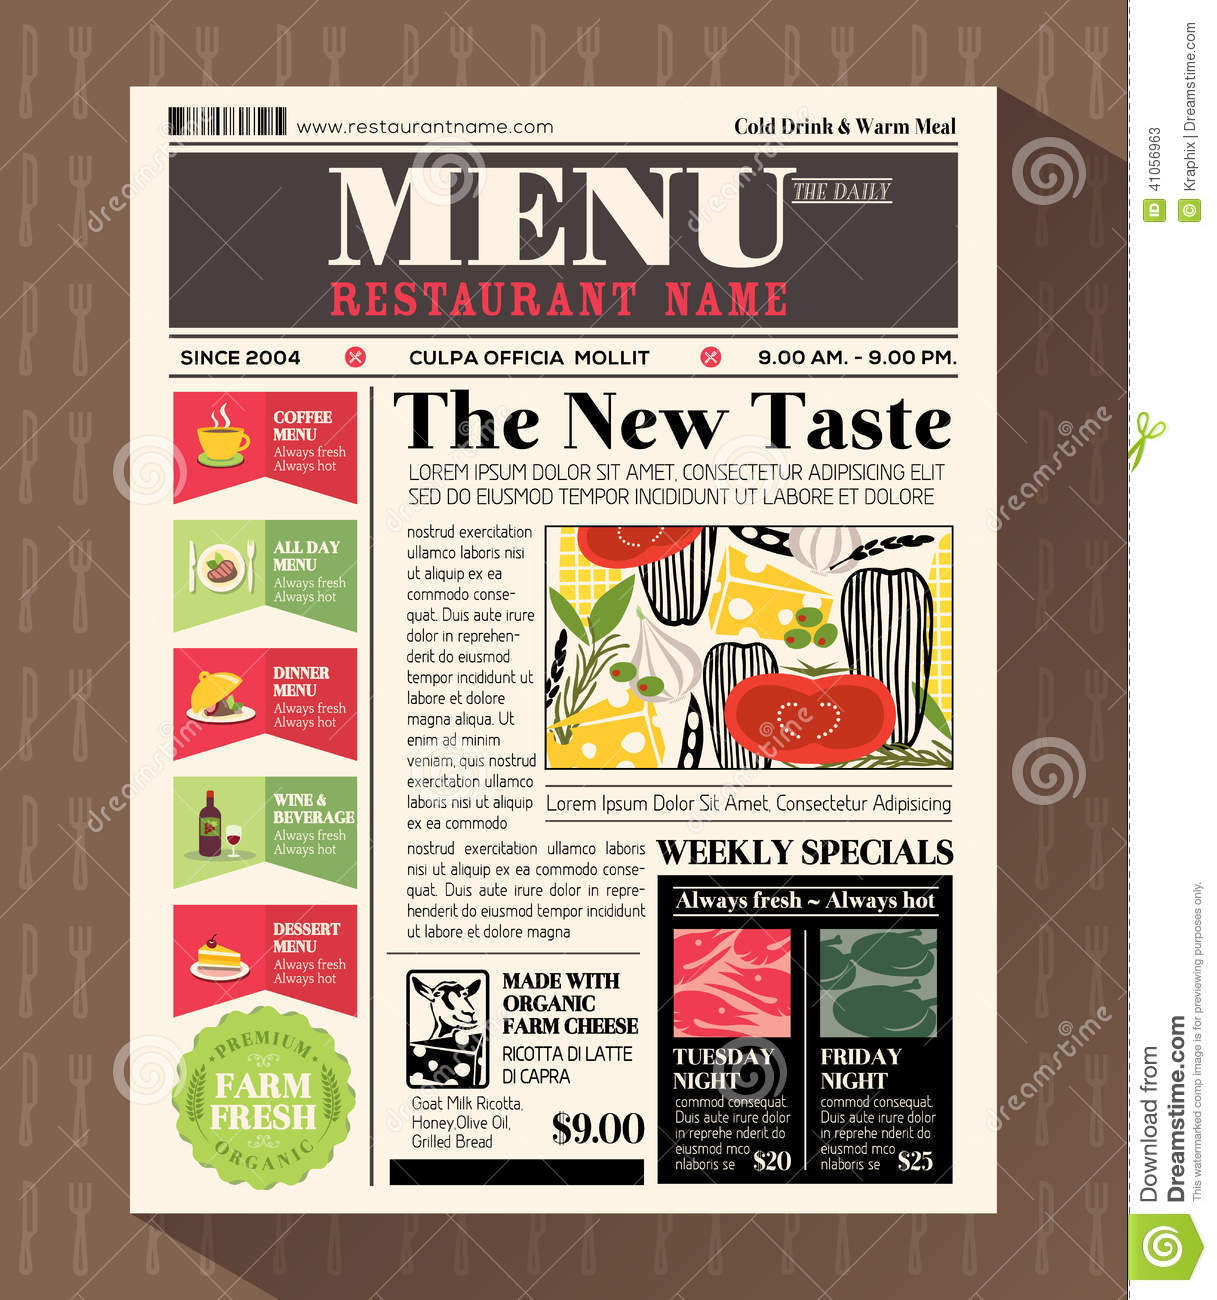 Restaurant Menu Design Template In Newspaper Style Stock Vector ...